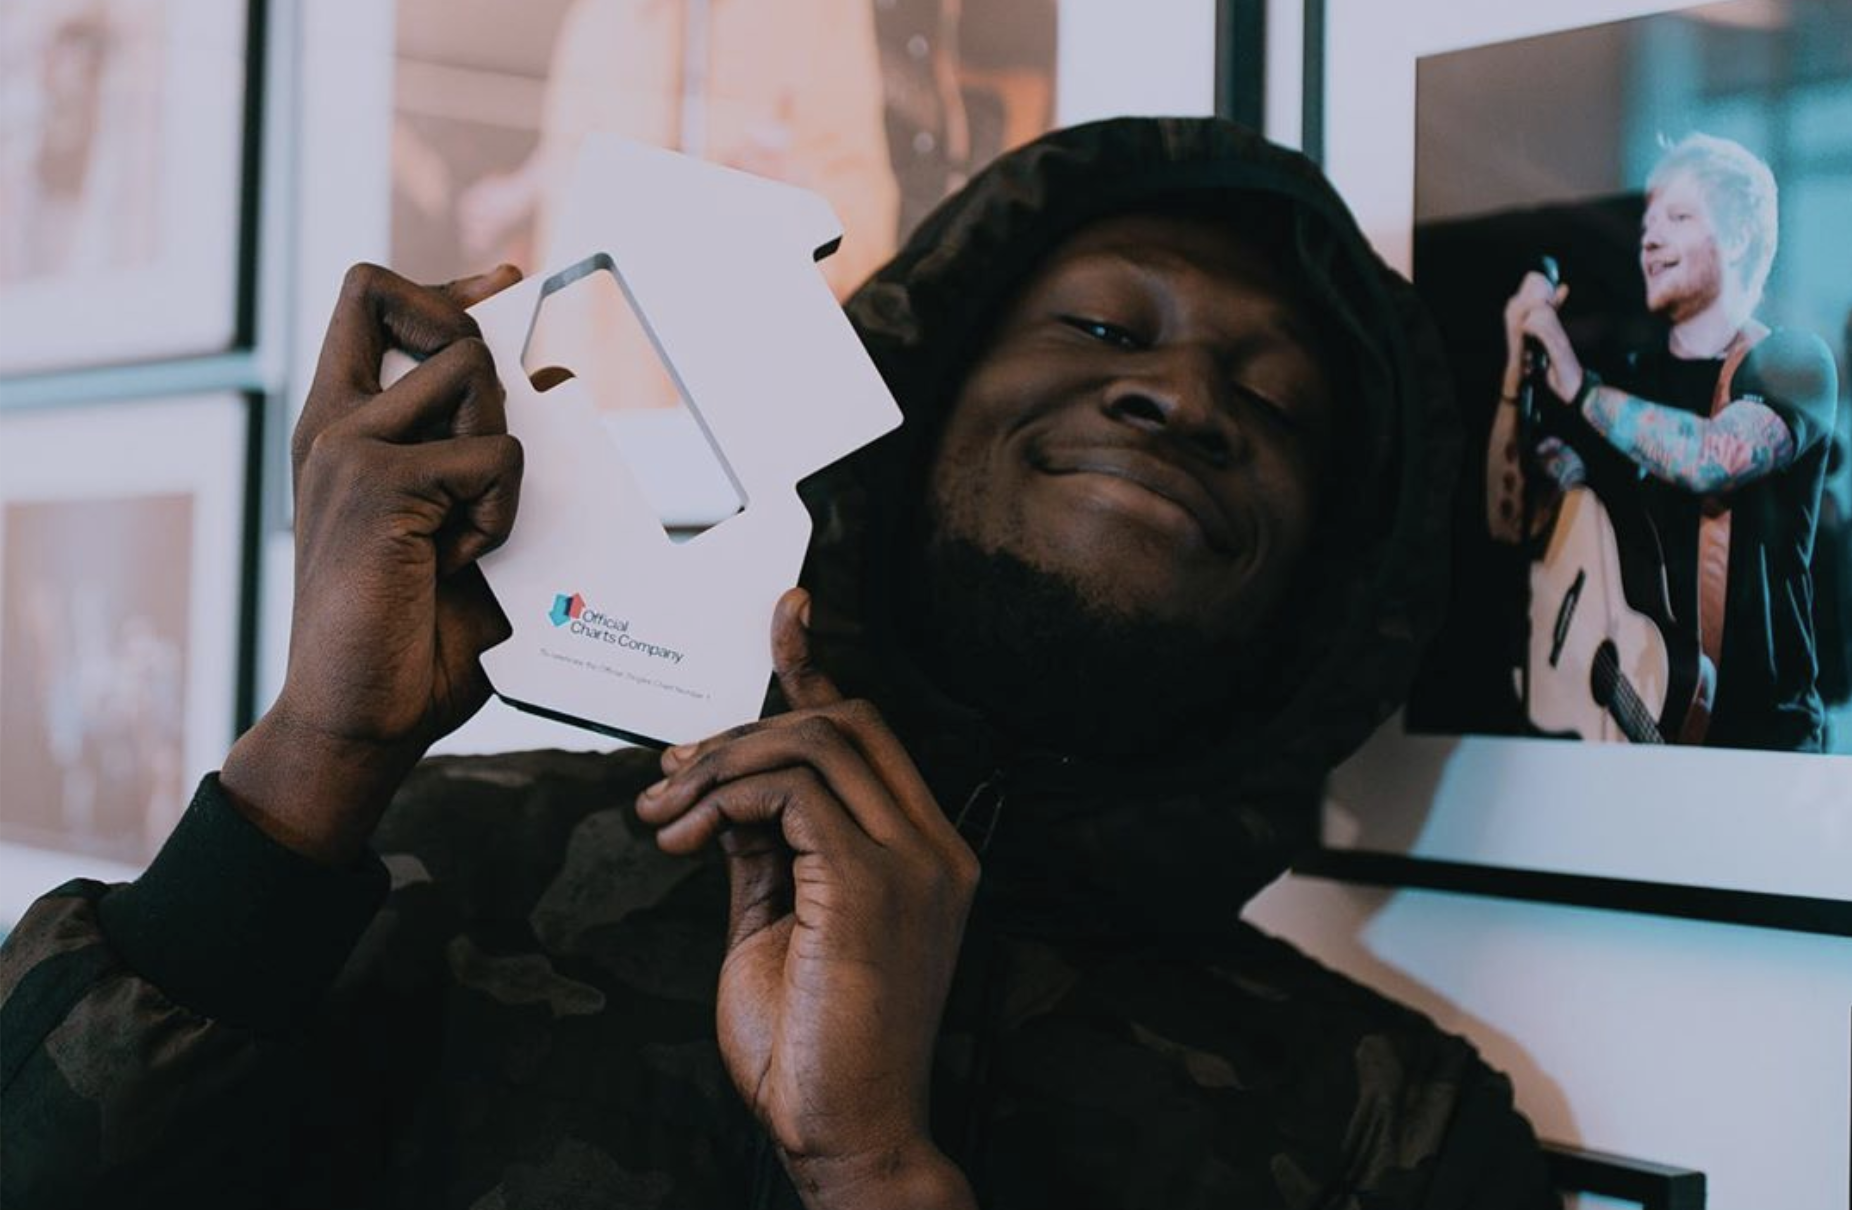 Stormzy - Disappointed (Video)| 16BARS